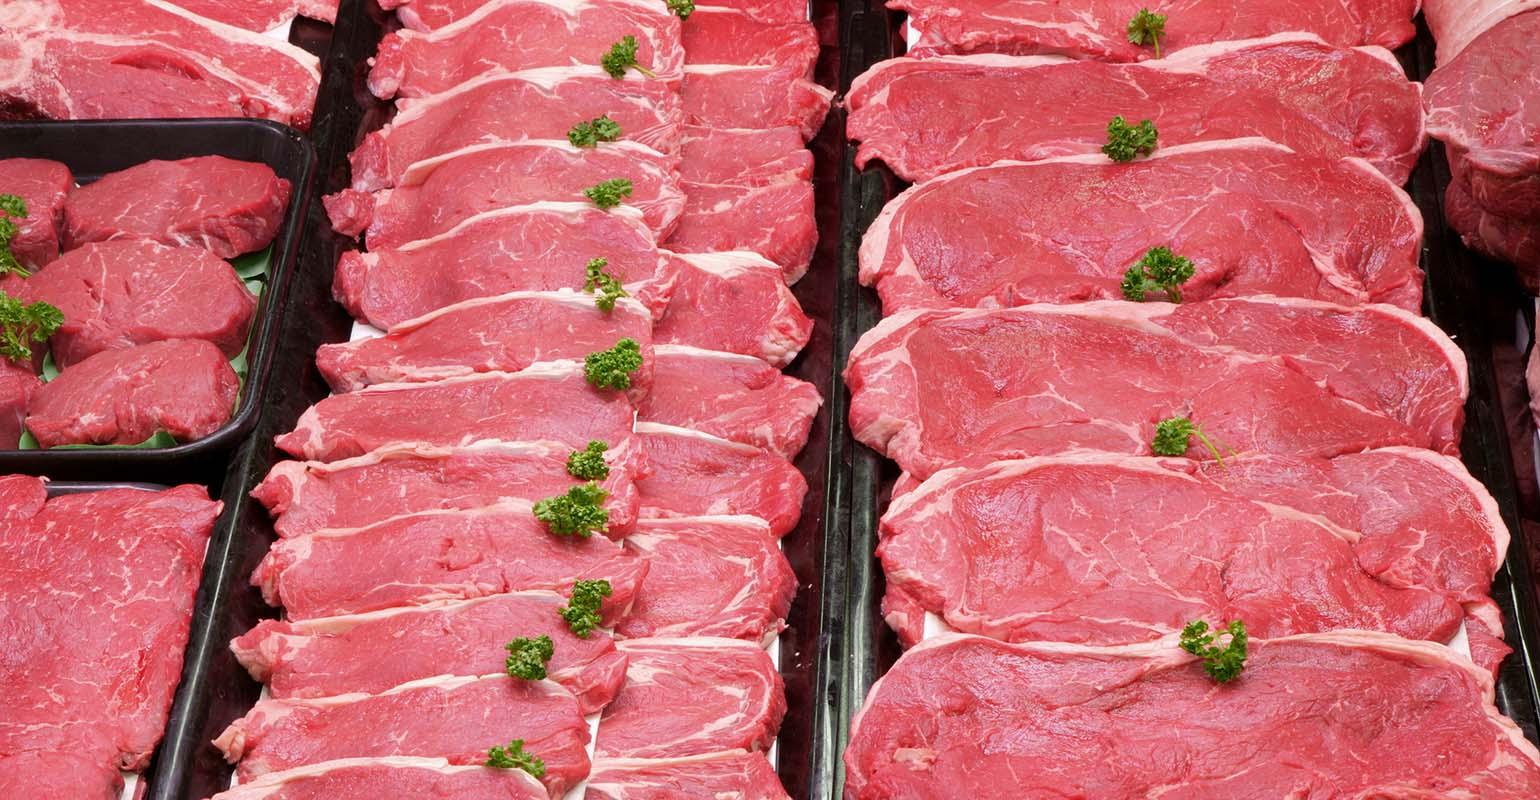 This is why marbling is important for high-quality meat